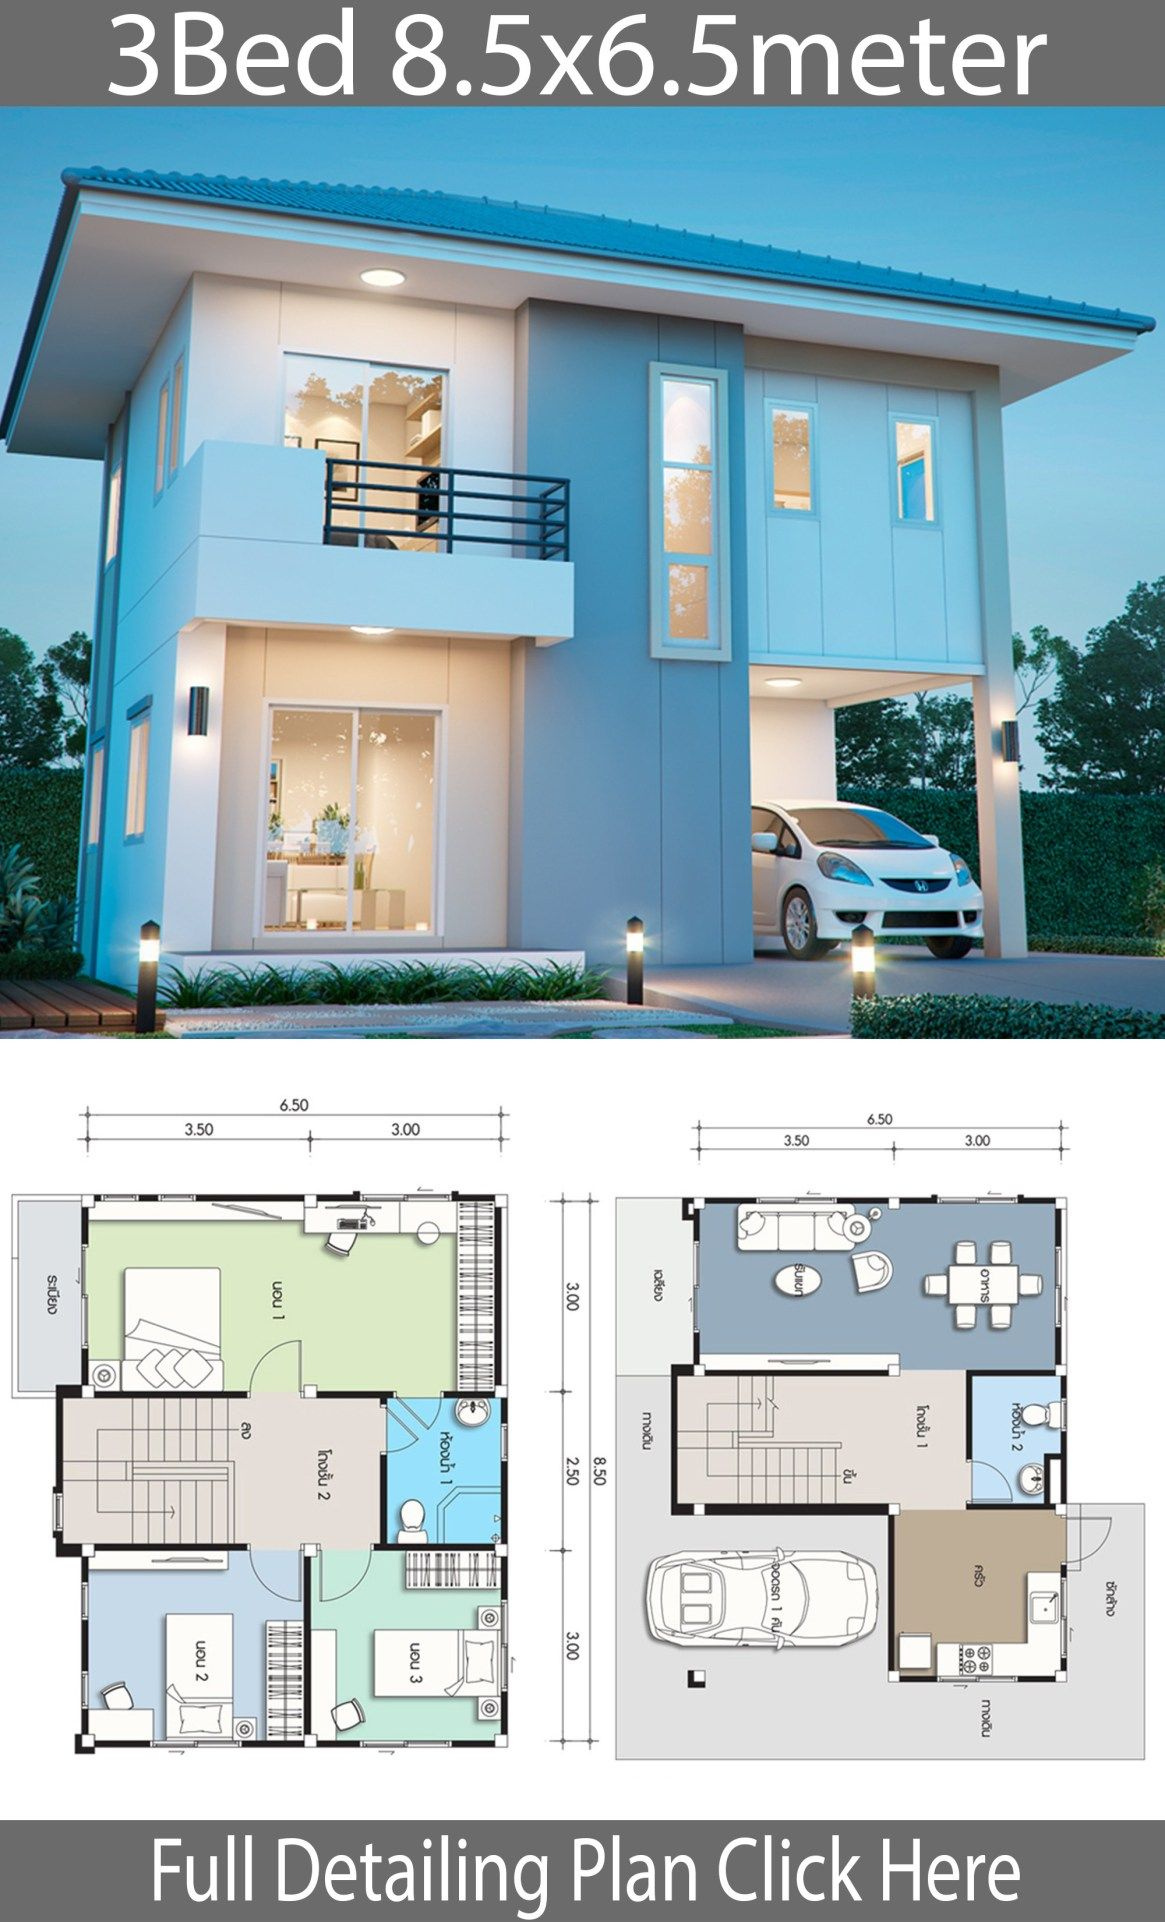 House design plan 8.5x6.5m with 3 bedrooms images